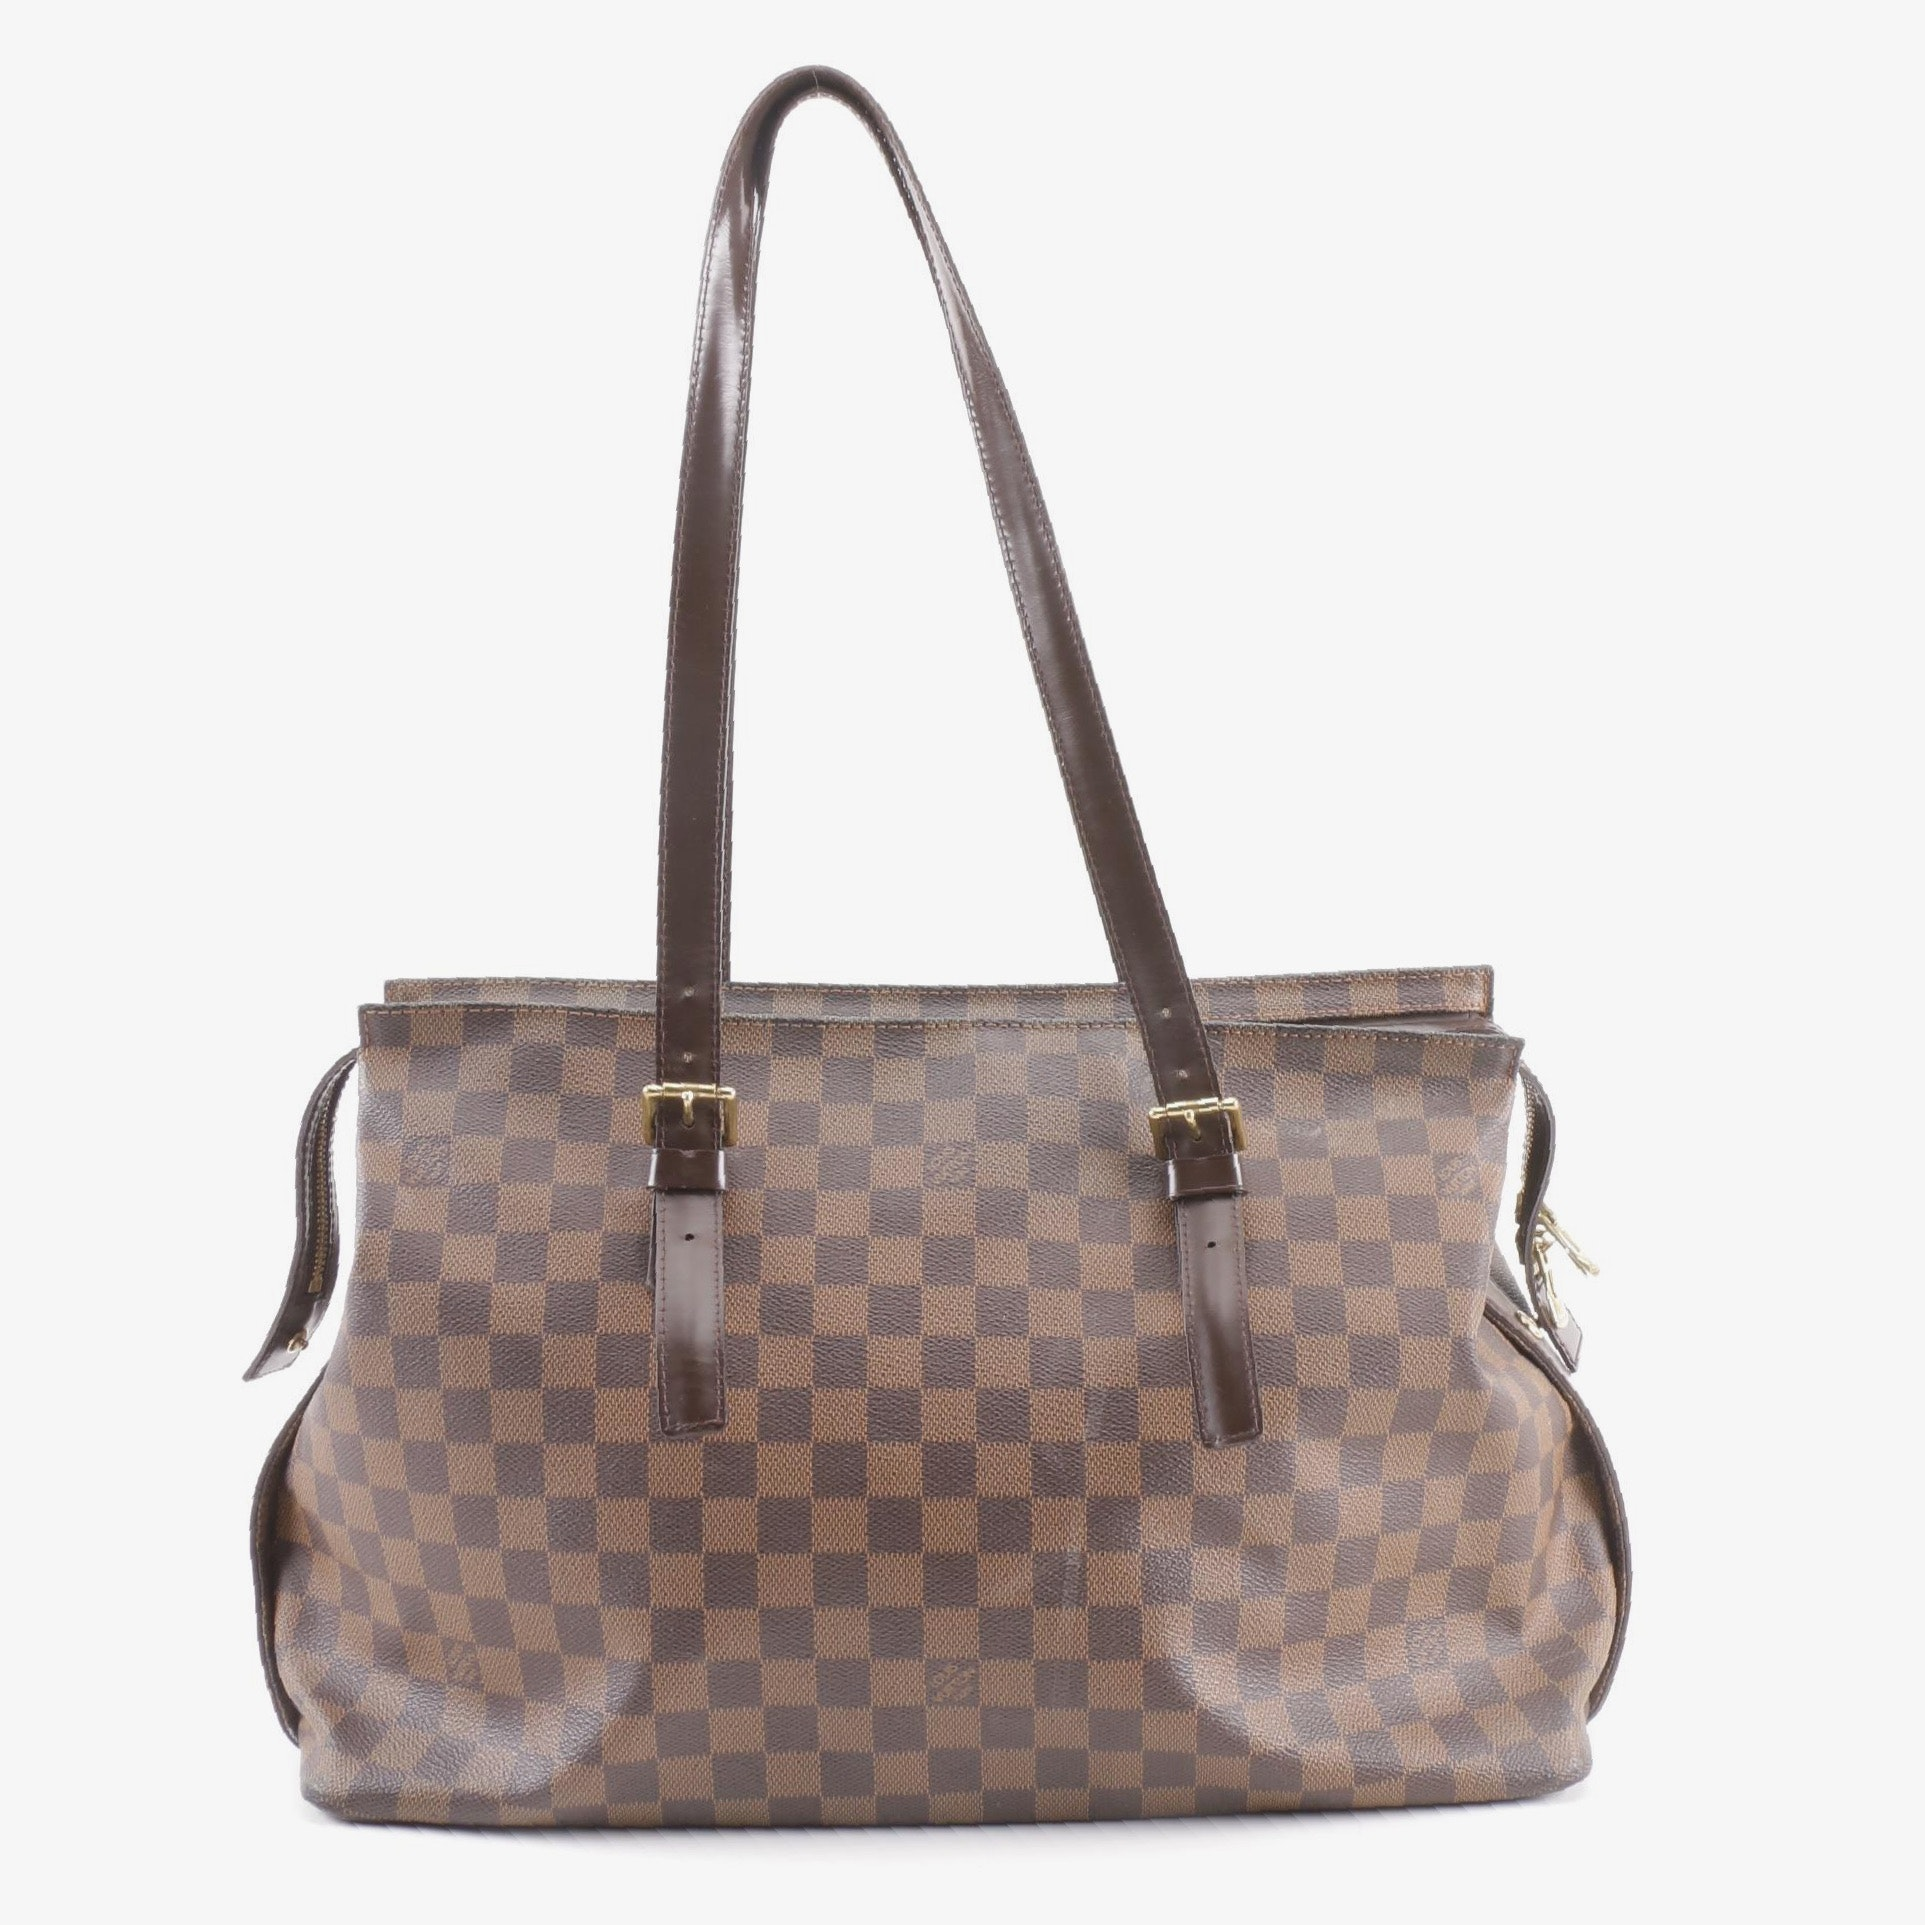 2006 Louis Vuitton Paris Damier Ebene Canvas Chelsea Tote